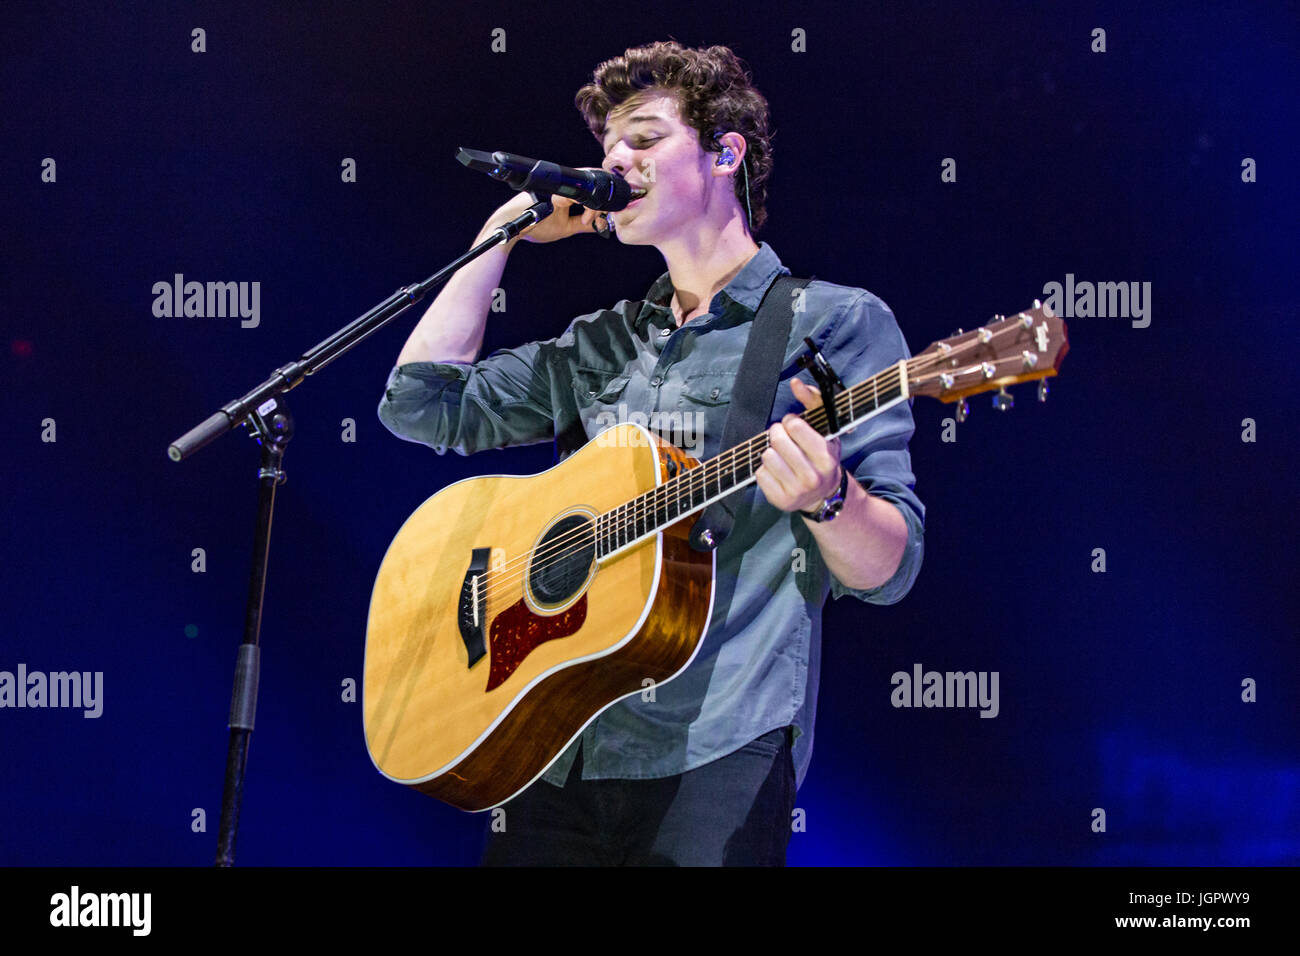 Vancouver, Canada. 8th Jul, 2017. Shawn Mendes Illuminate Tour at Rogers Arena in Vancouver, BC on July 8th 2017 - Stock Image